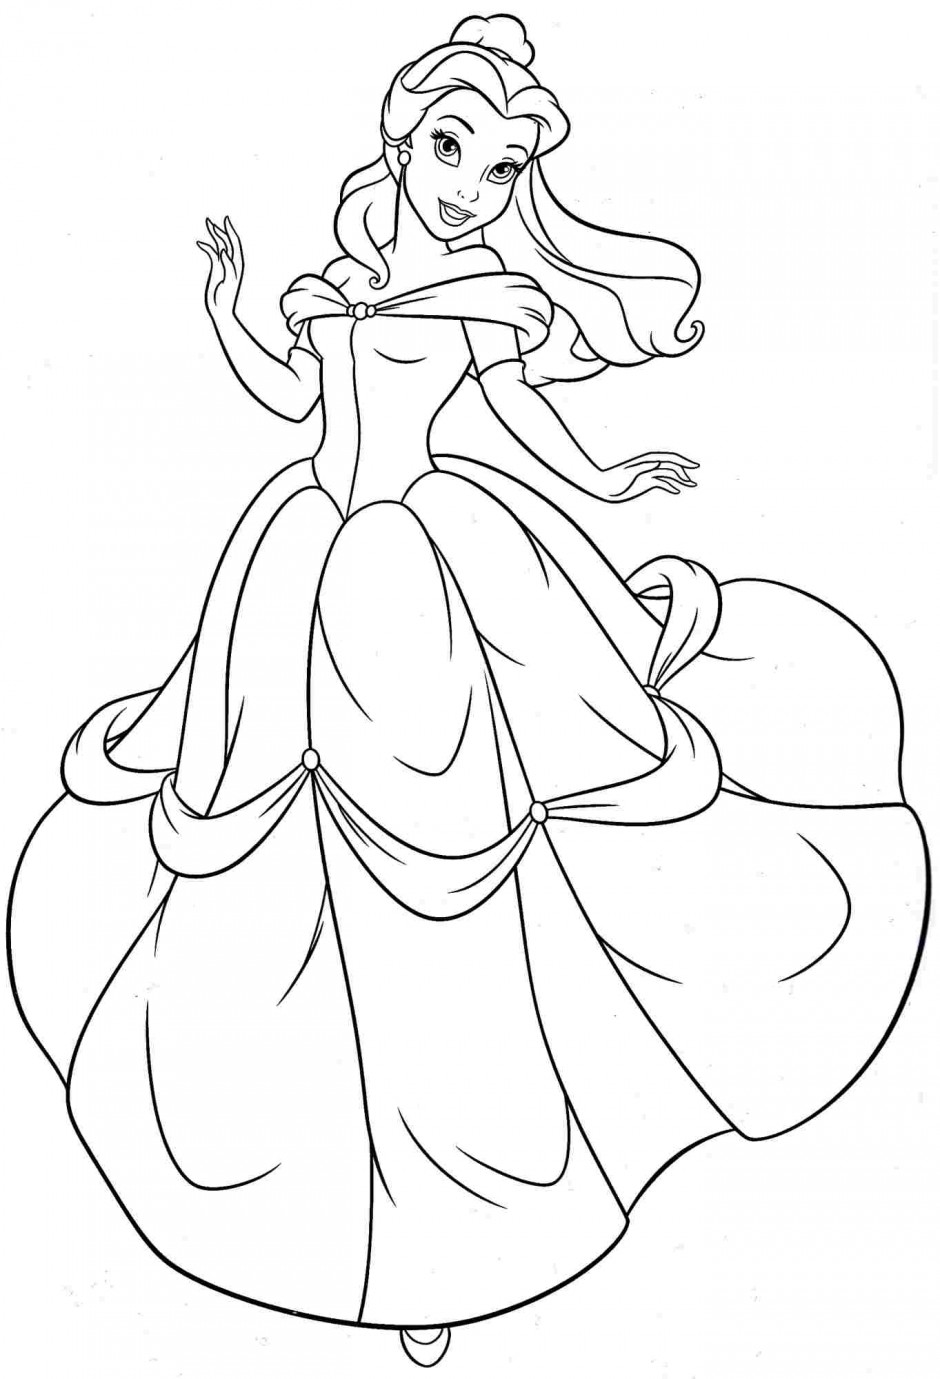 Coloring Pages Disney Princess Belle : Free printable belle coloring pages for kids